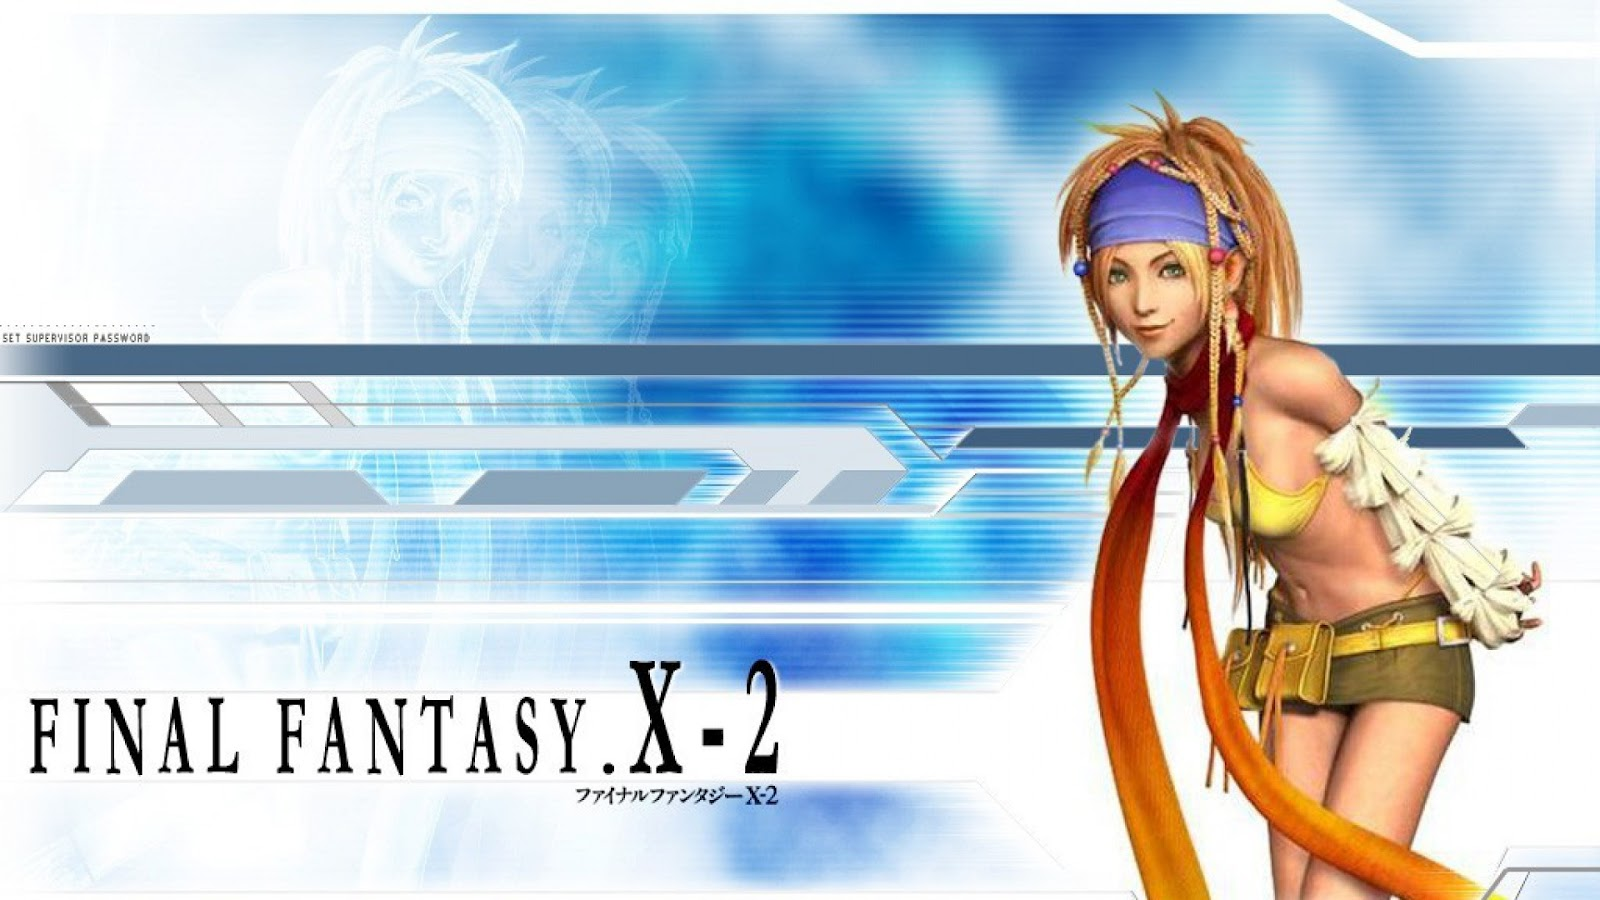 final fantasy x 2 wallpaper - simple pics